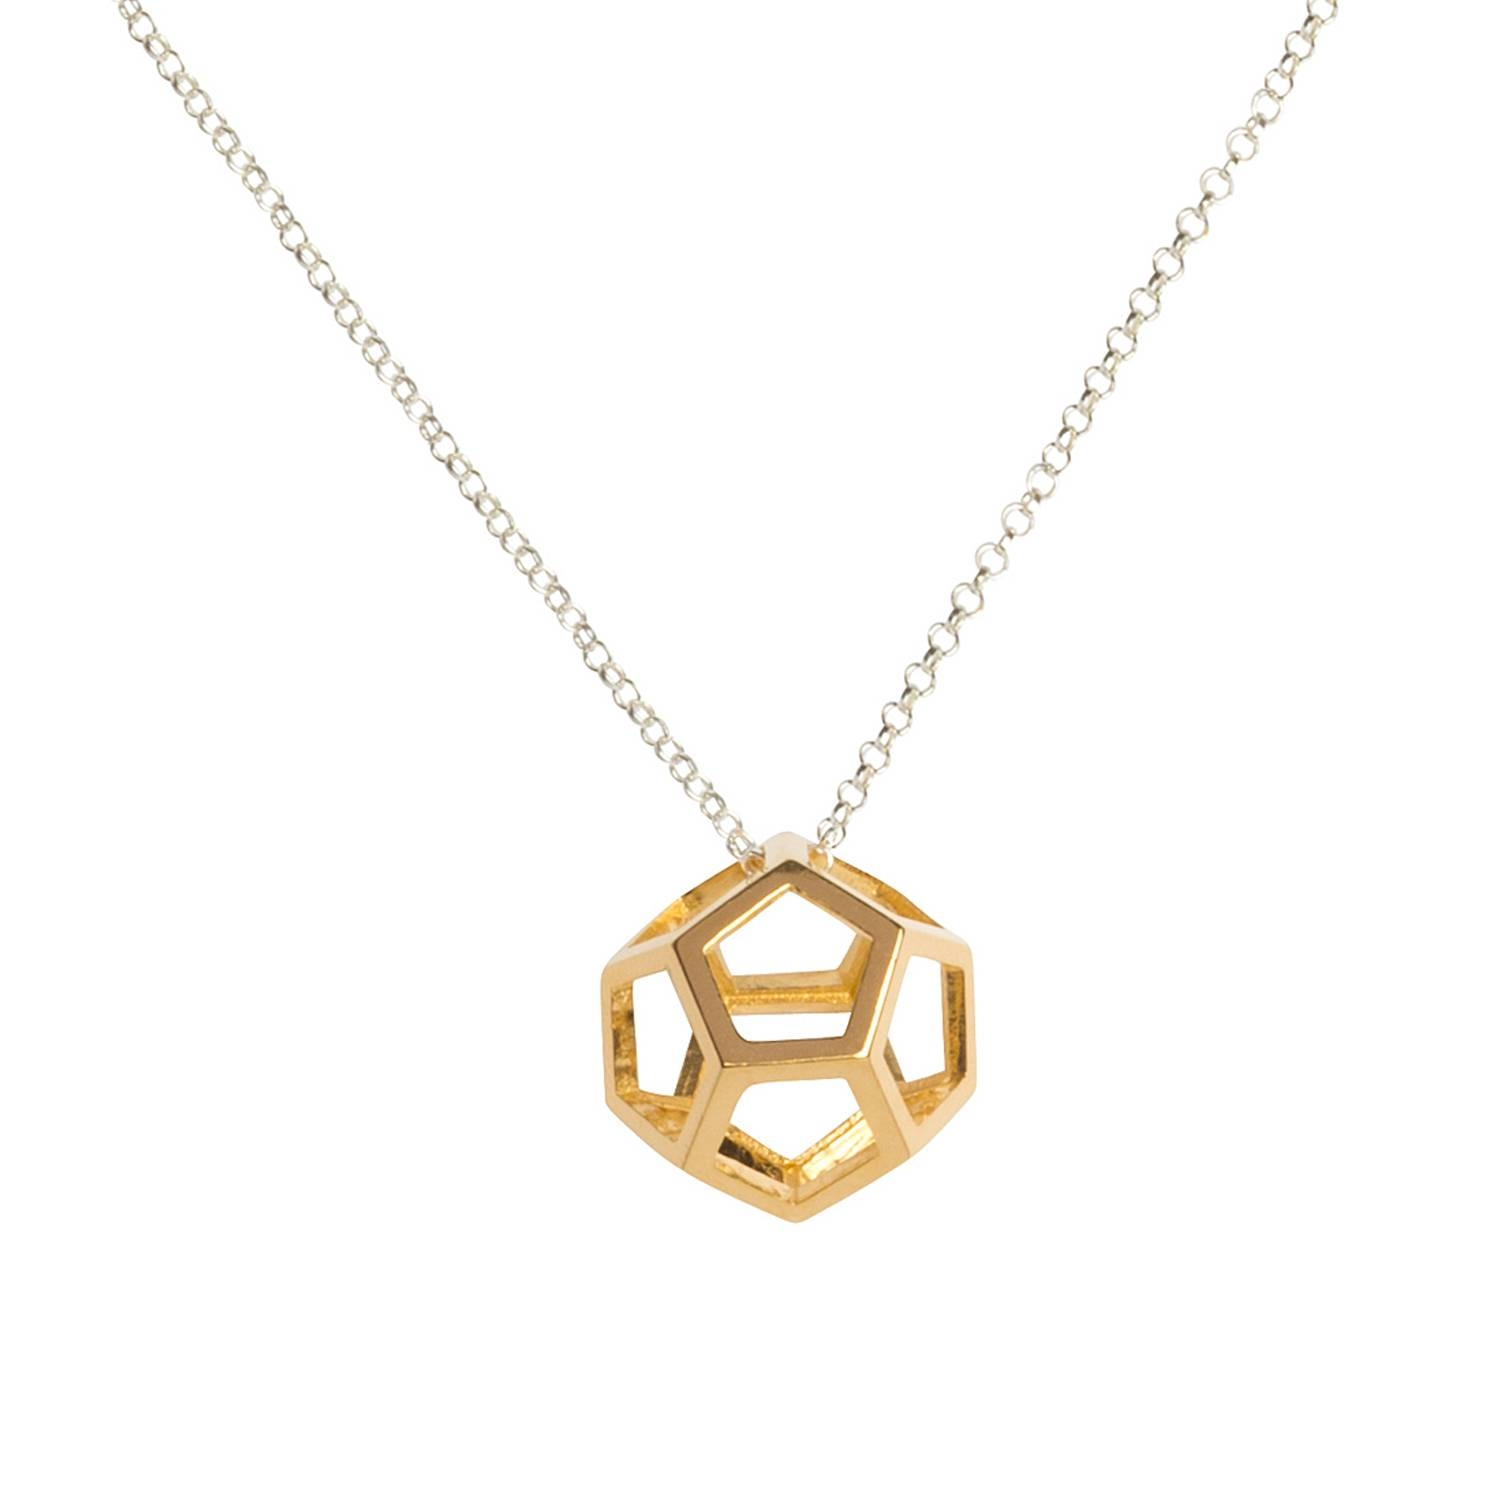 Hollow Dodecahedron Pendant • Necklacesmatthew Calvin throughout Dodecahedron Pendant Lights (Image 12 of 15)